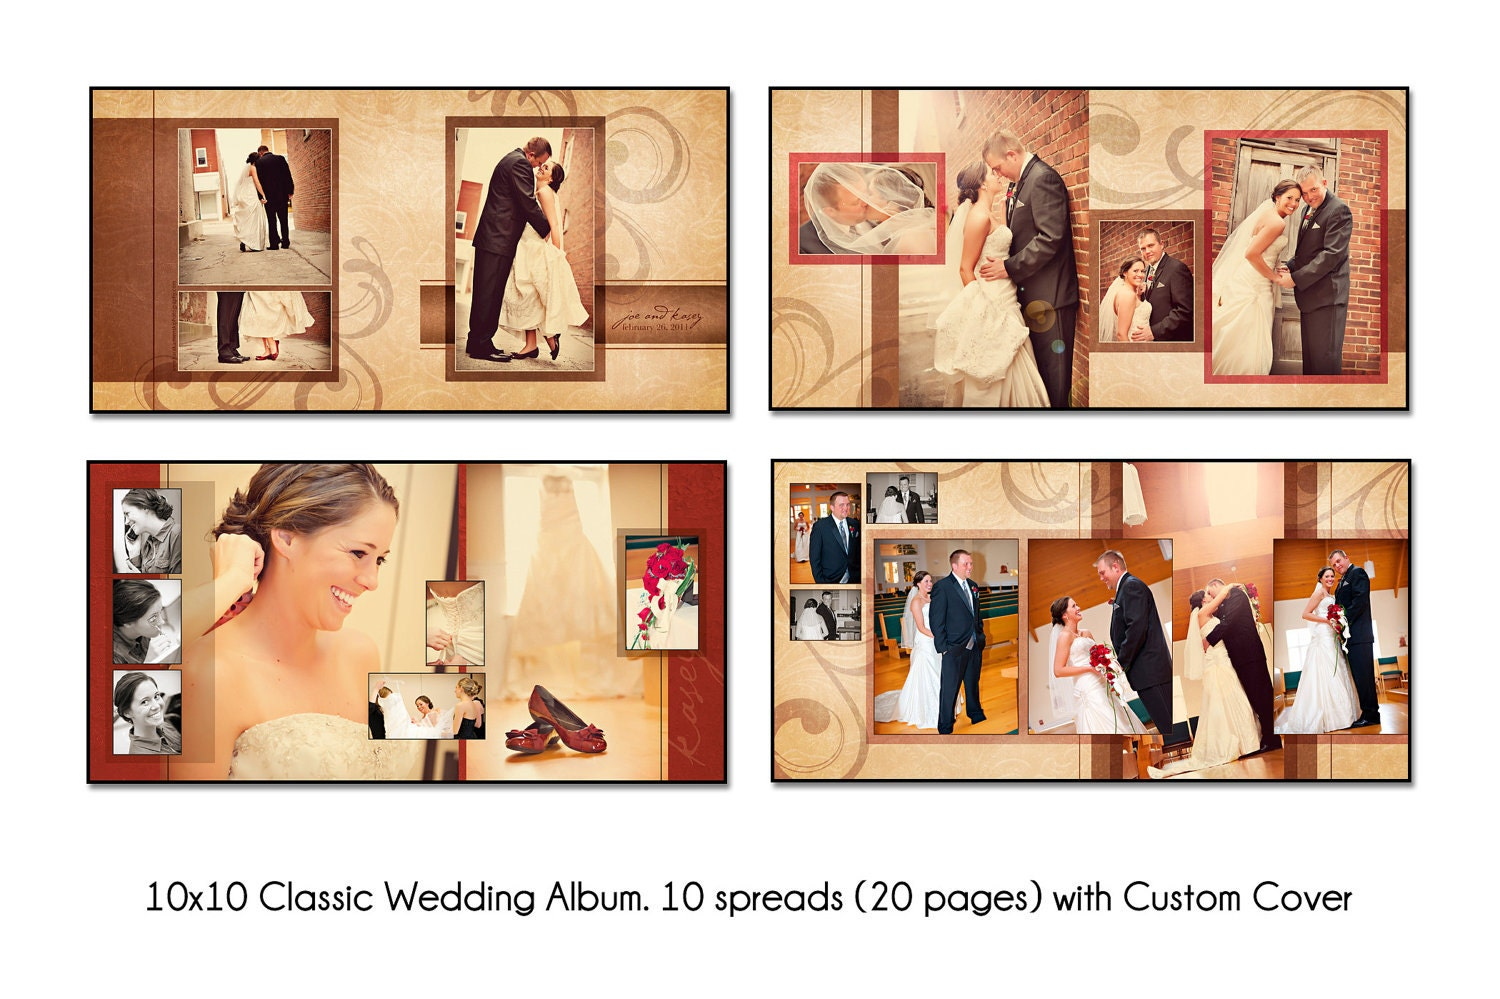 Psd wedding album template autumn swirl 12x12 10spread 20 for Wedding photo album templates in photoshop